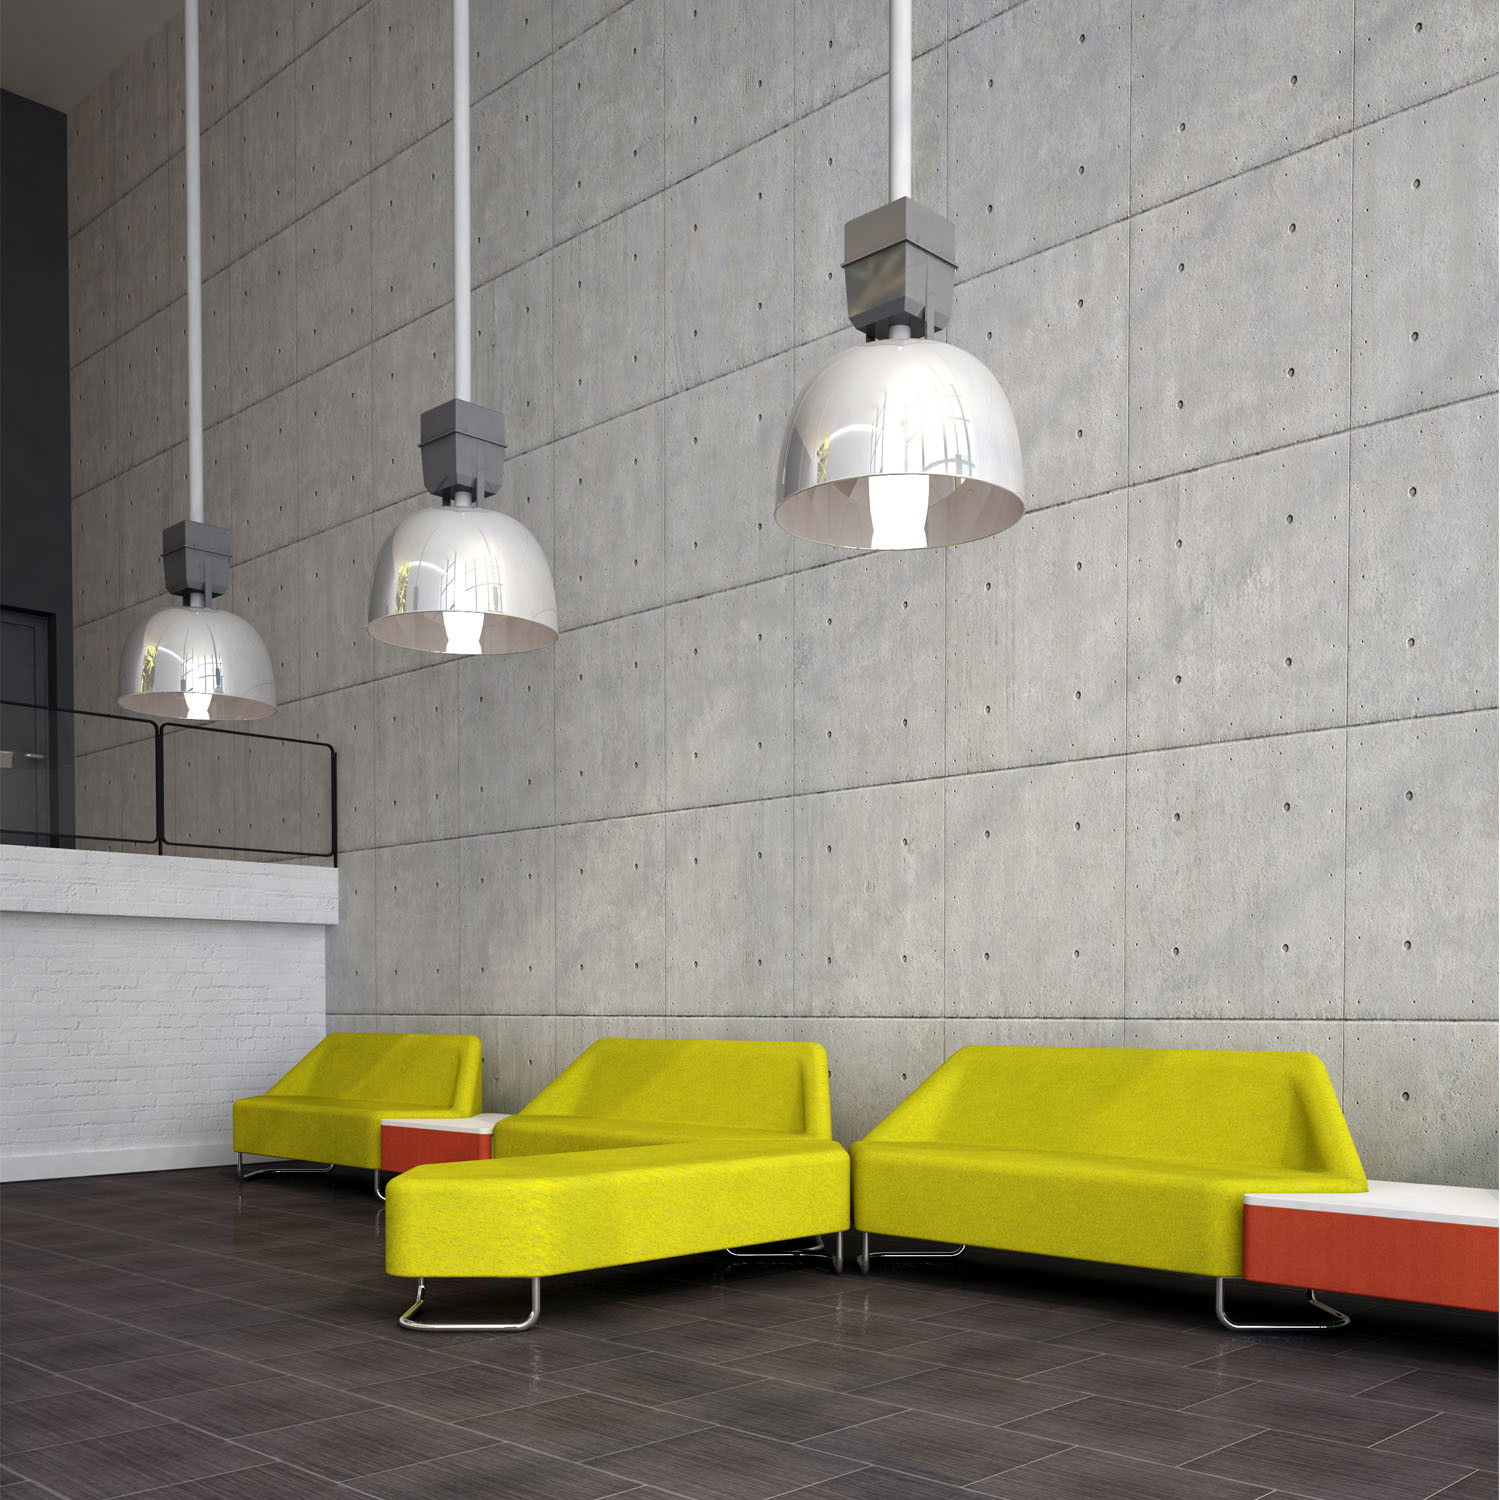 Hexel Modular Seating by Connection